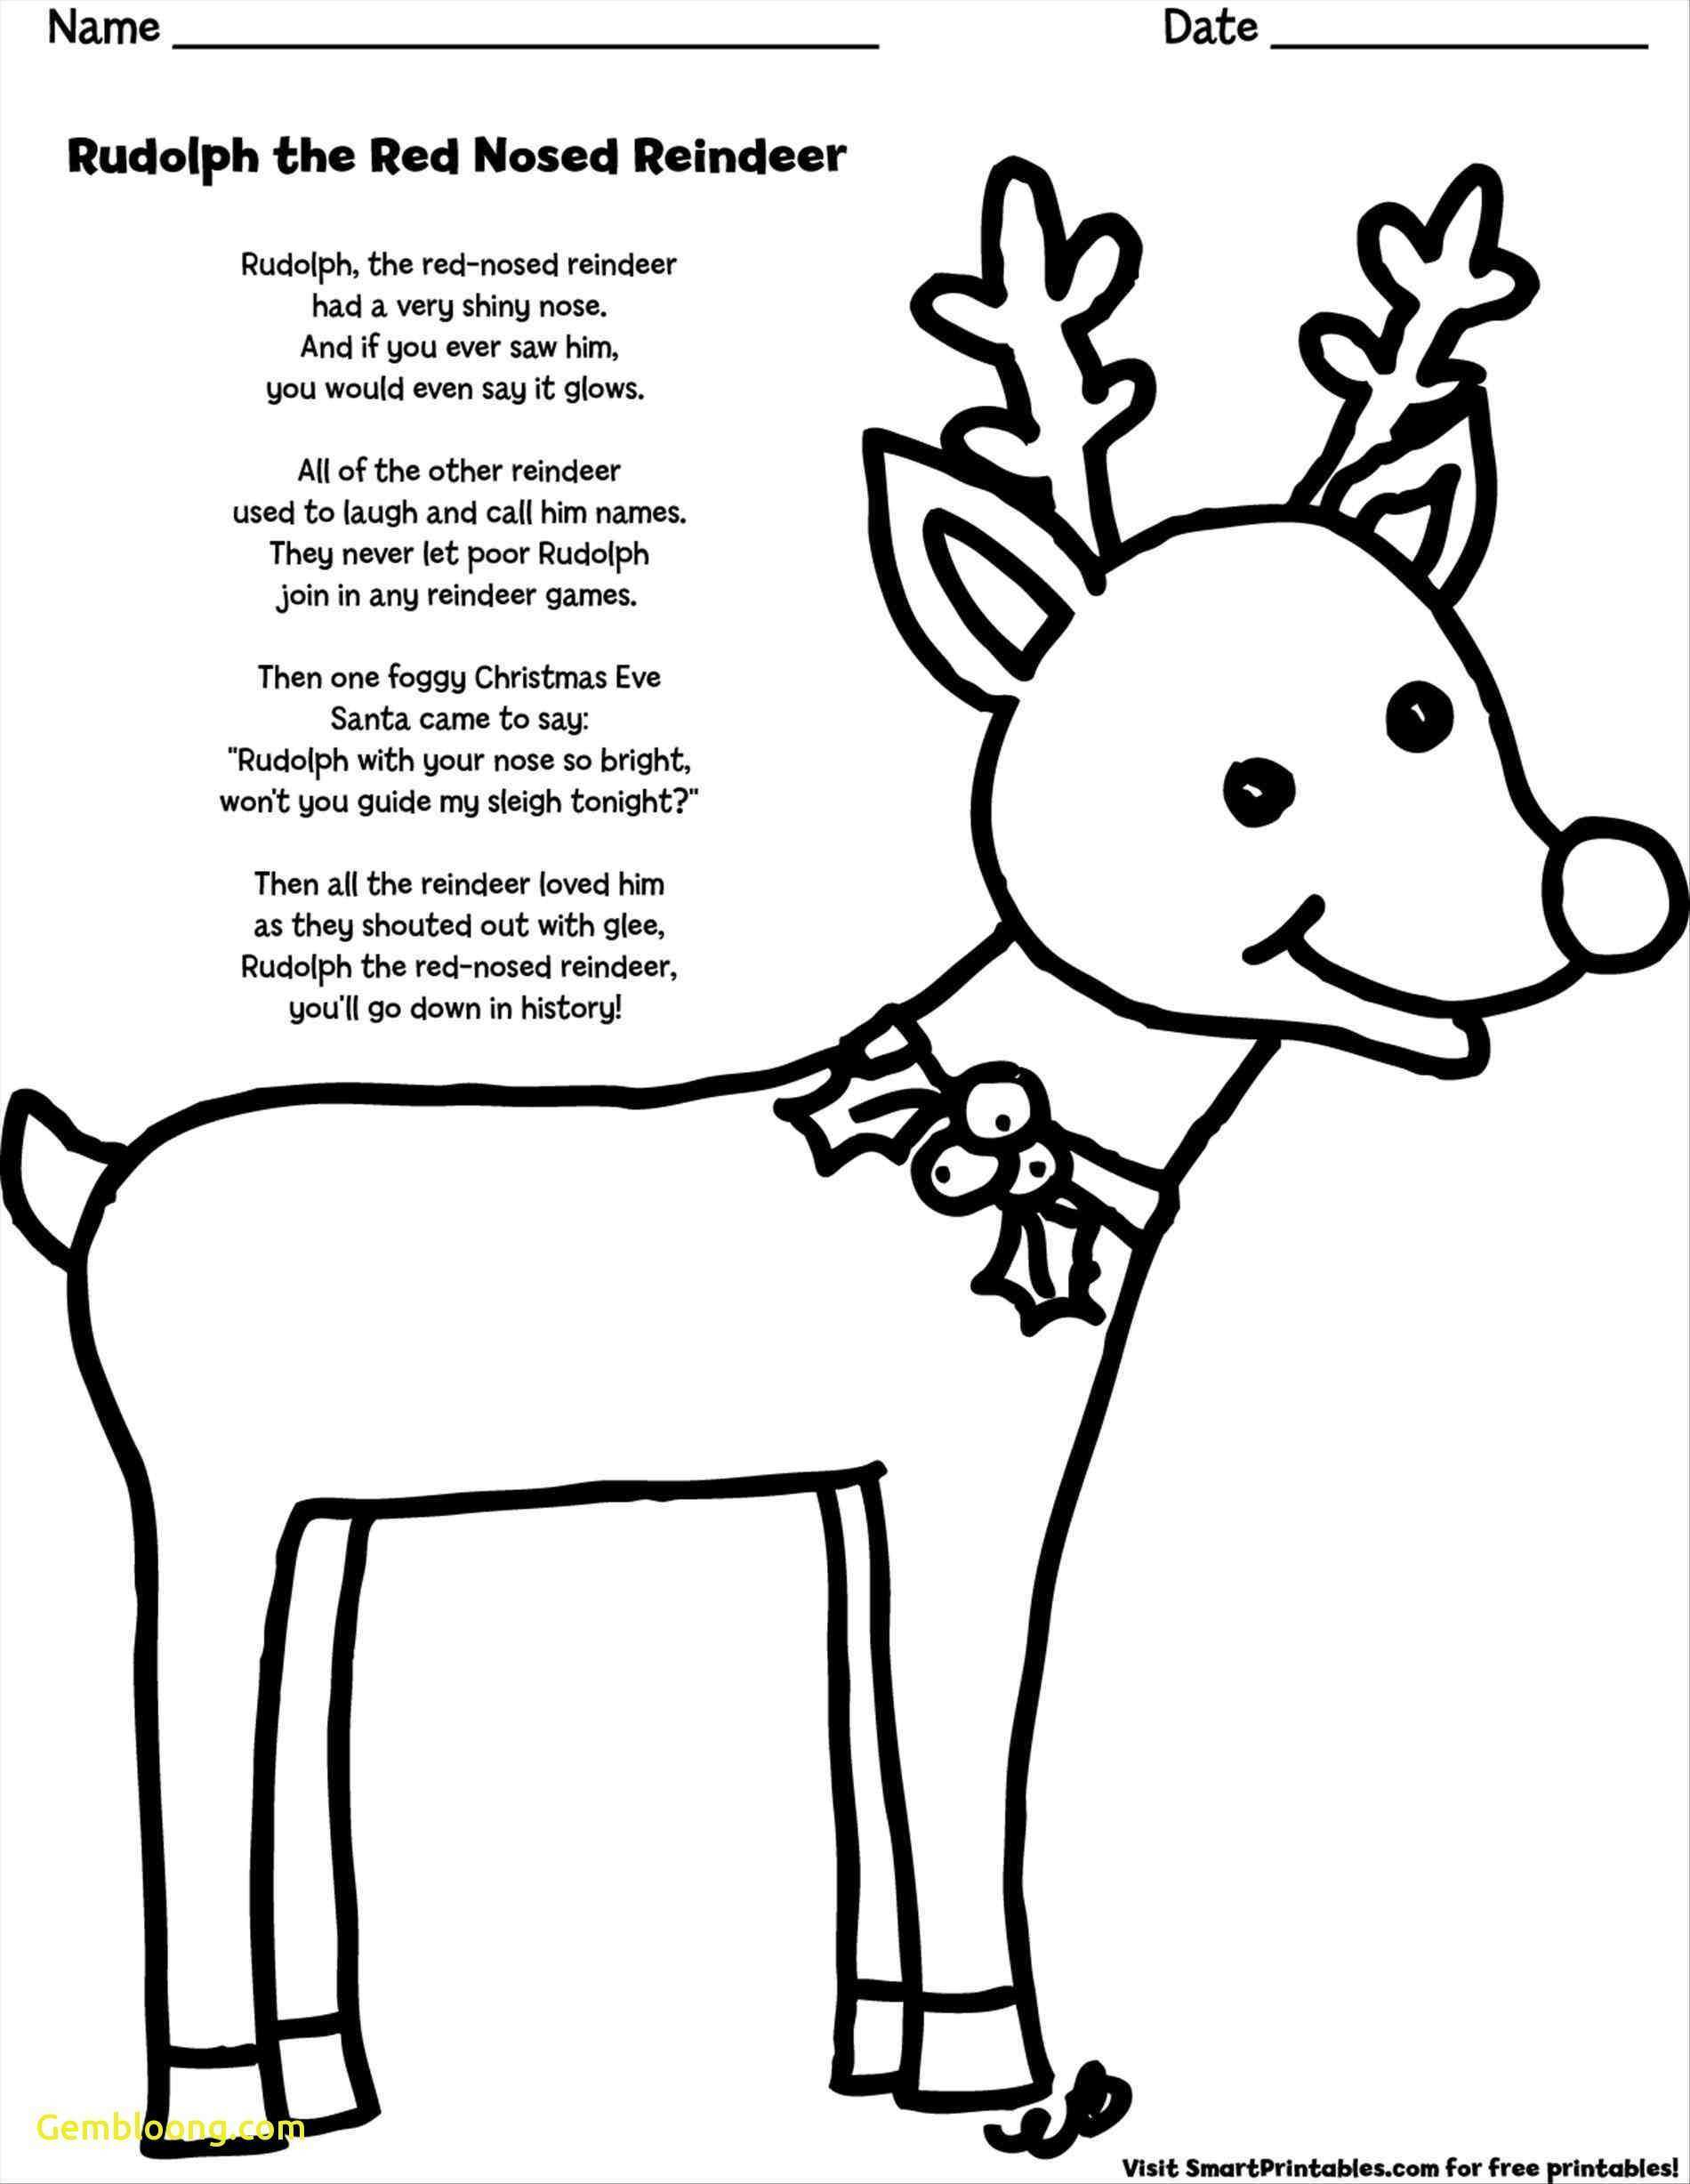 Santa And Rudolph Coloring Pages Santa Rudolph Coloring Pages New Rudolph The Red Nosed Reindeer